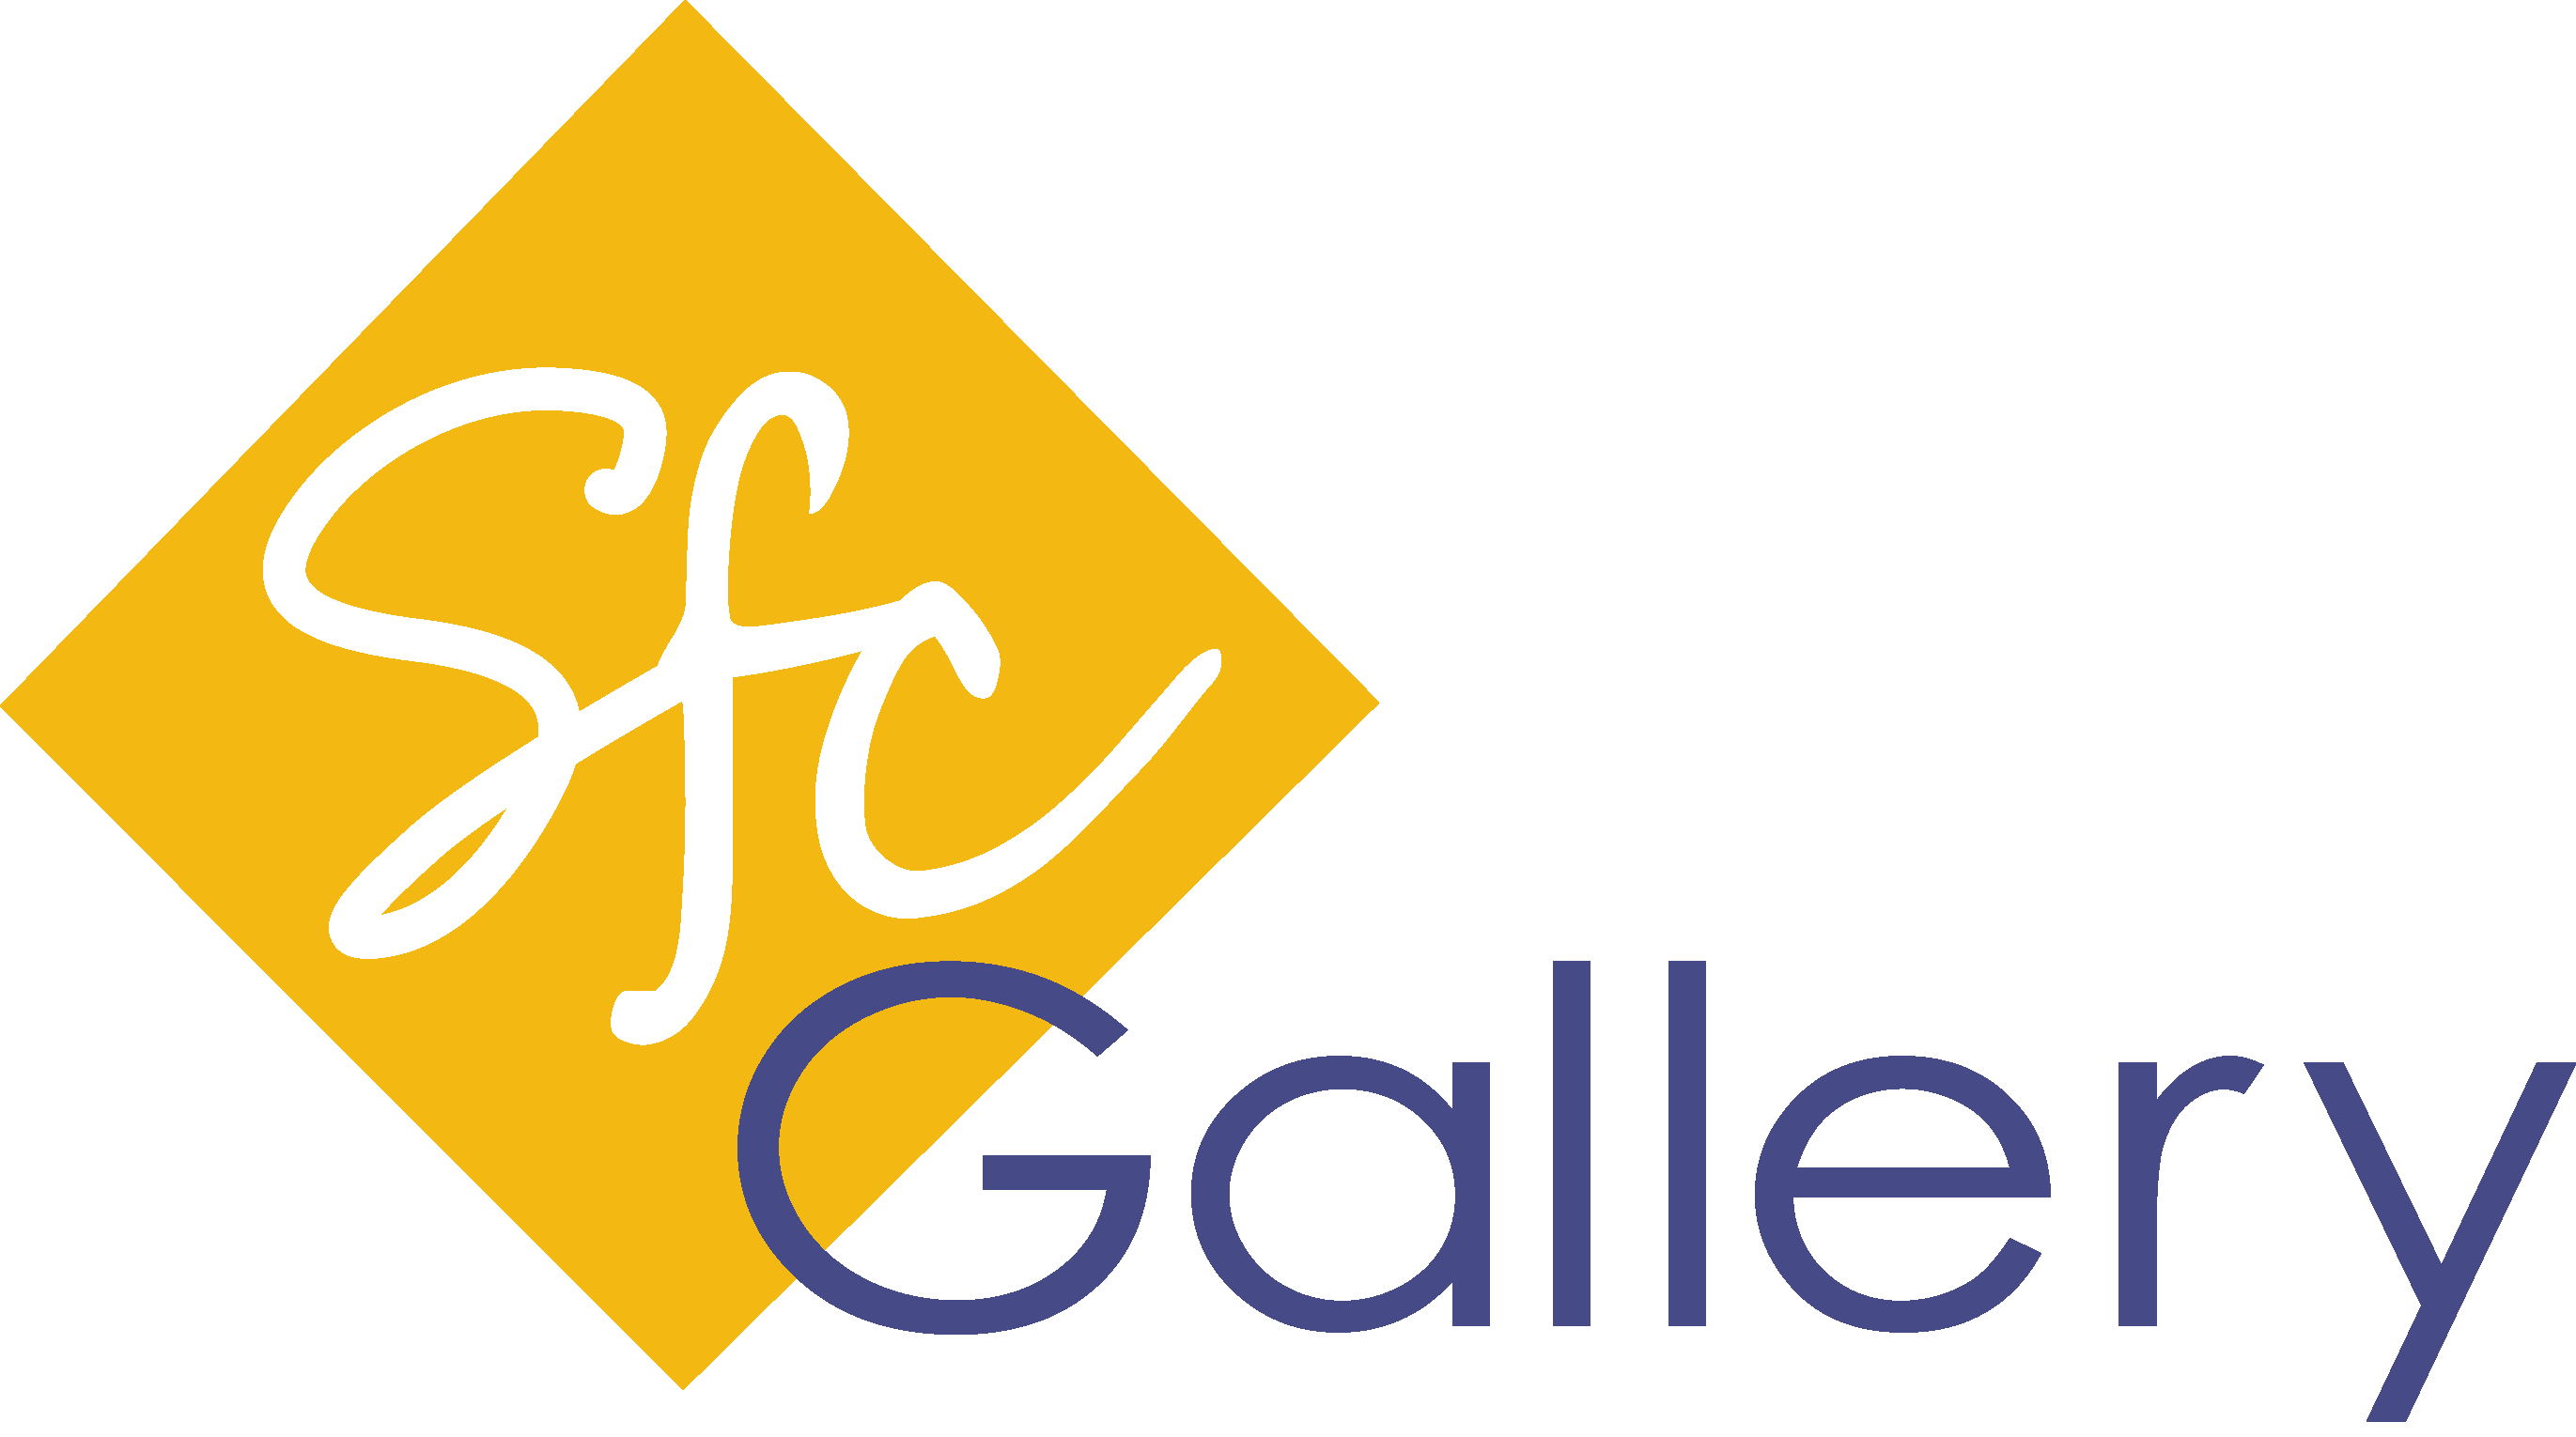 Sfc_Gallery_logo_original_editable